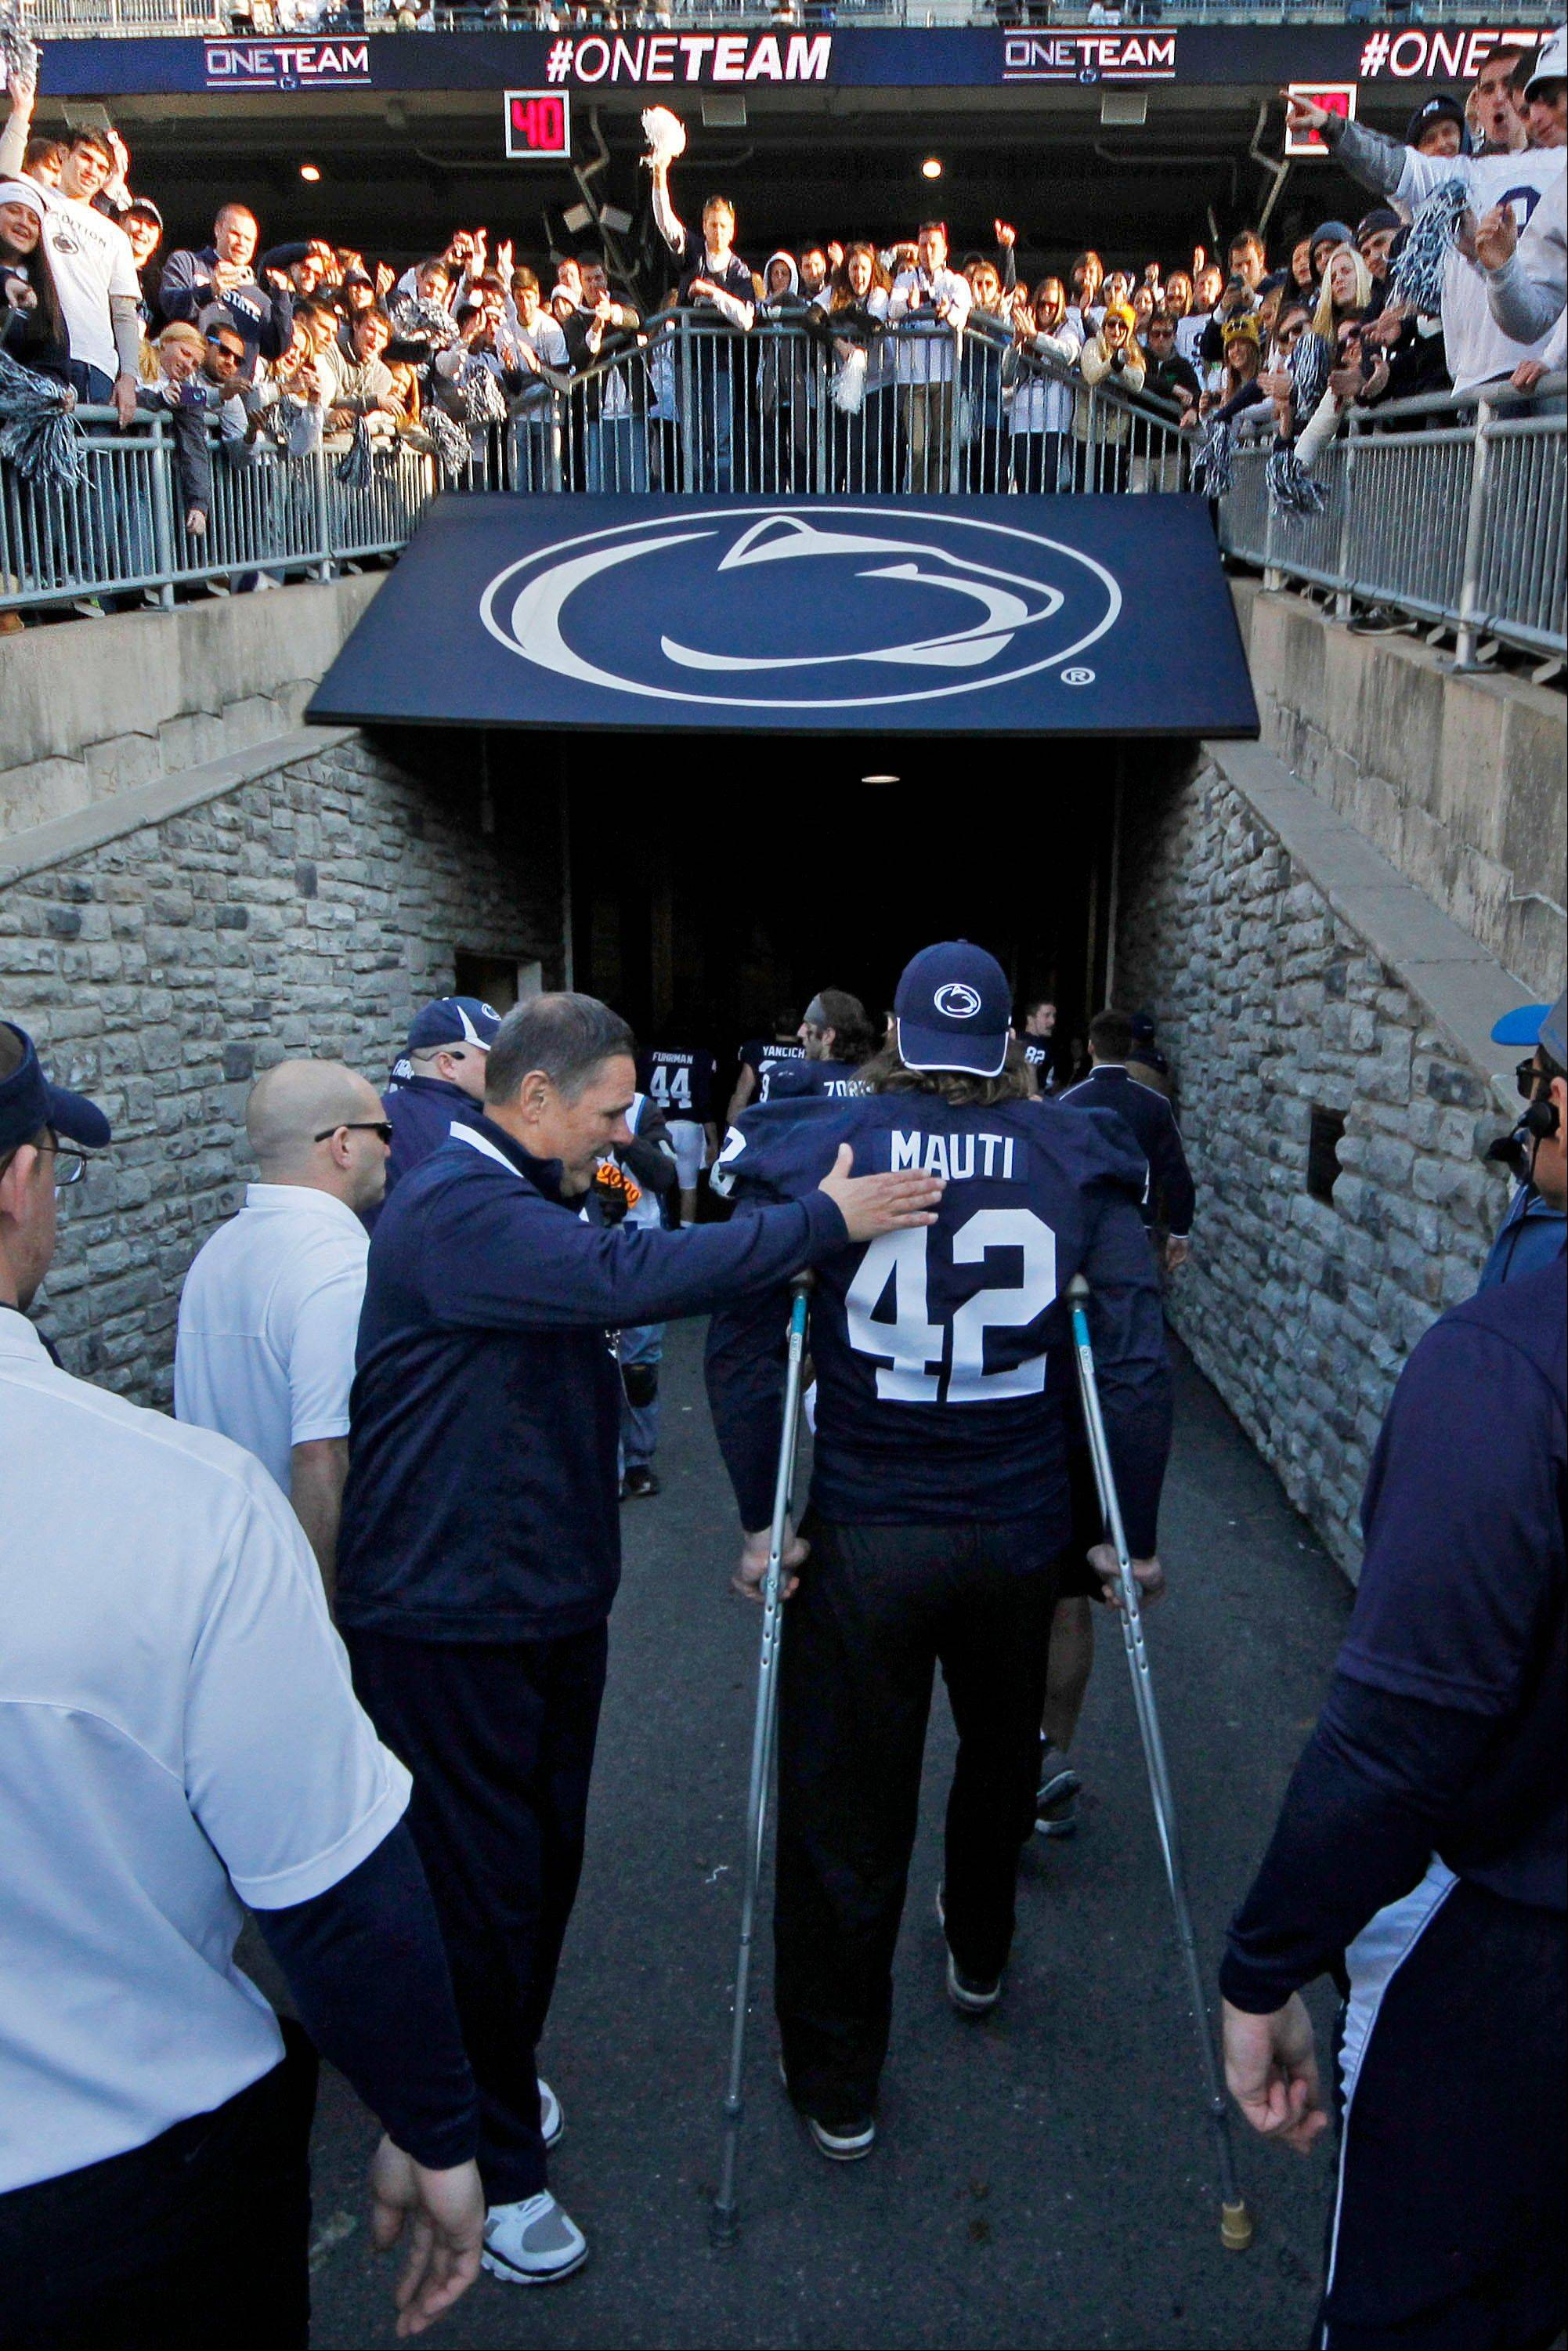 Penn State linebacker Michael Mauti walks to the locker room on crutches after their 45-22 win over Indiana in State College, Pa. Mauti was injured on a play in the first quarter of the game and did not return to the game.